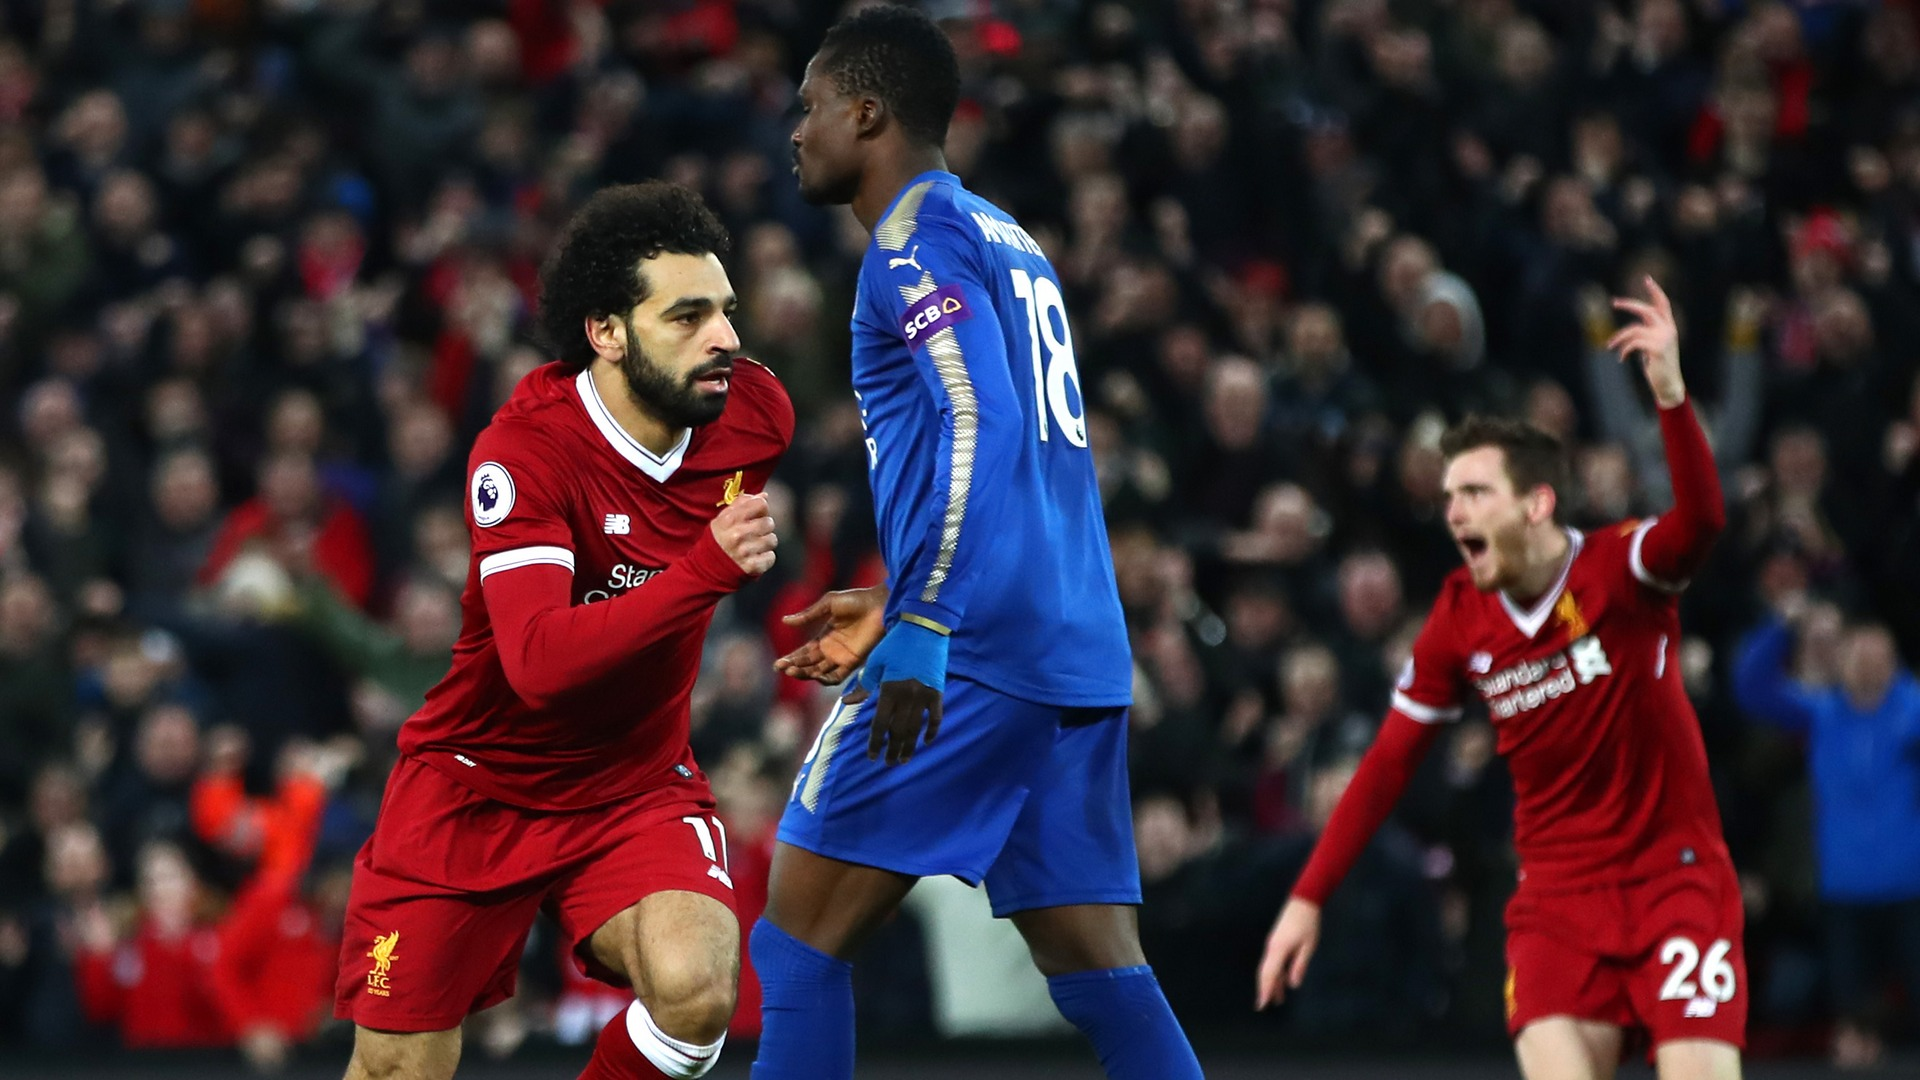 Mohamed Salah Liverpool Leicester City EPL 12302017